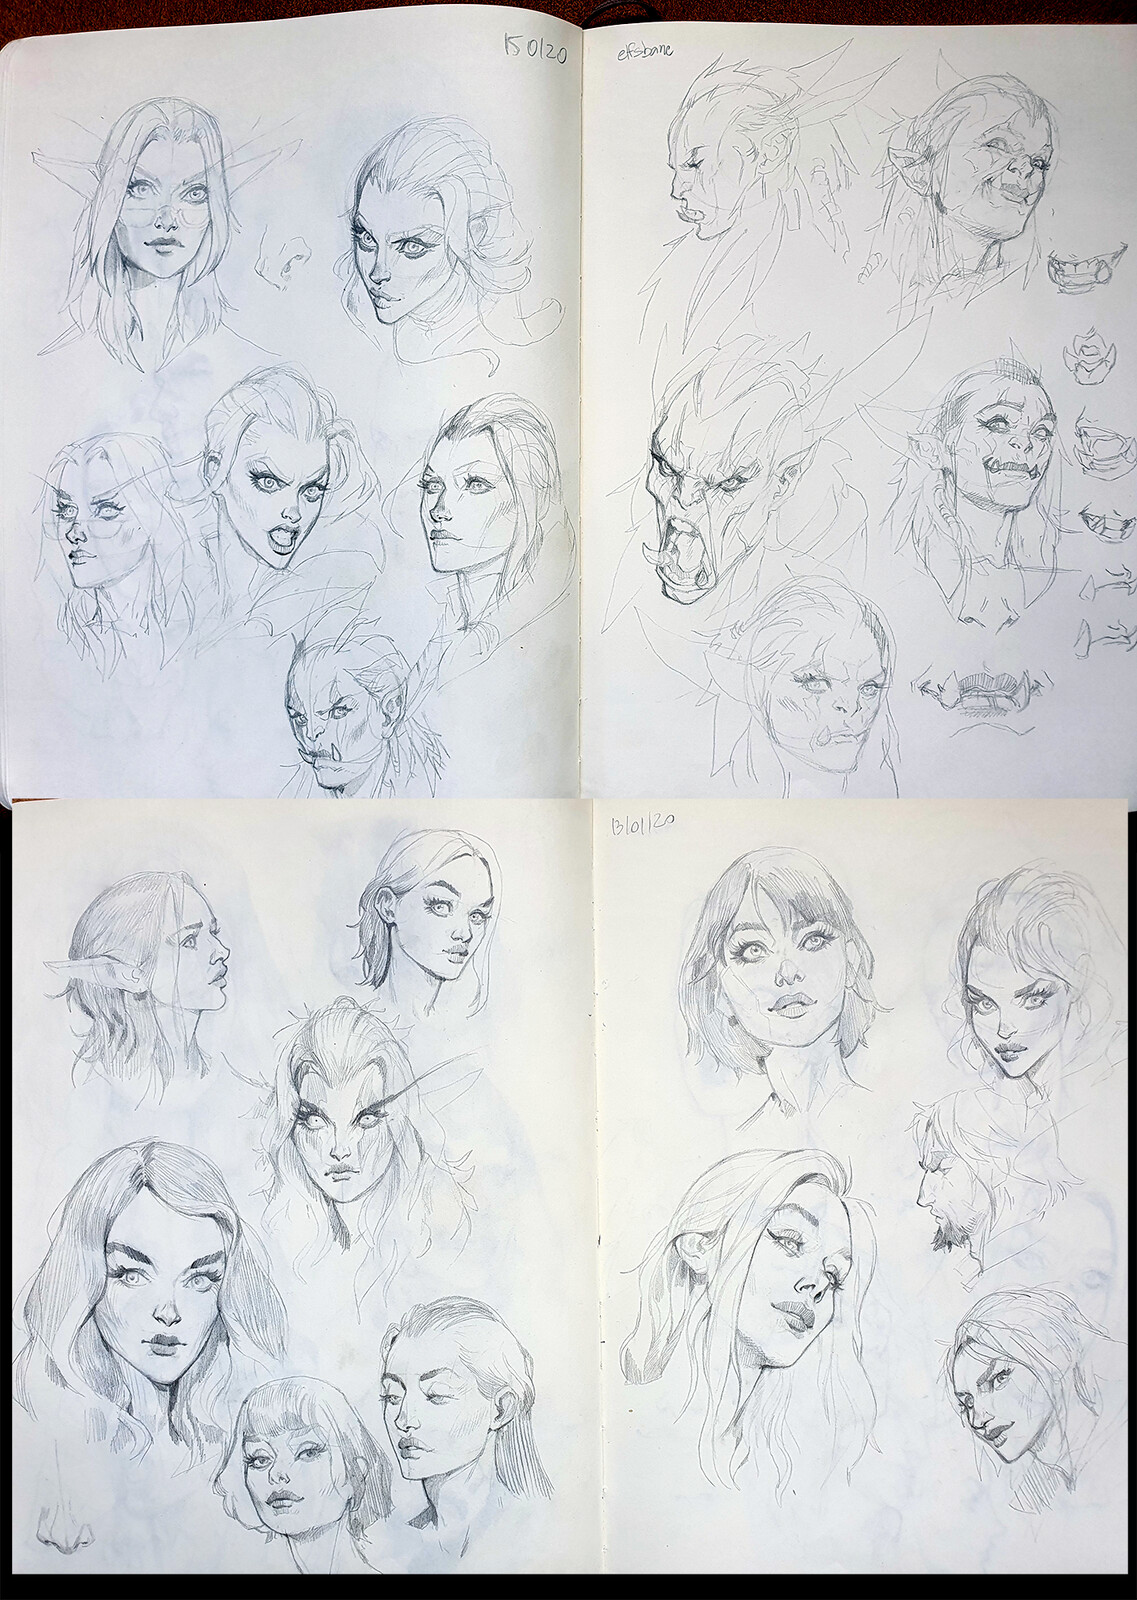 Female face explorations - At some point I would love to do an art of Jaina, in a more serious tone, so I did some explorations on my sketchbook - some Elise, Tyrande and the previous orc are around too.